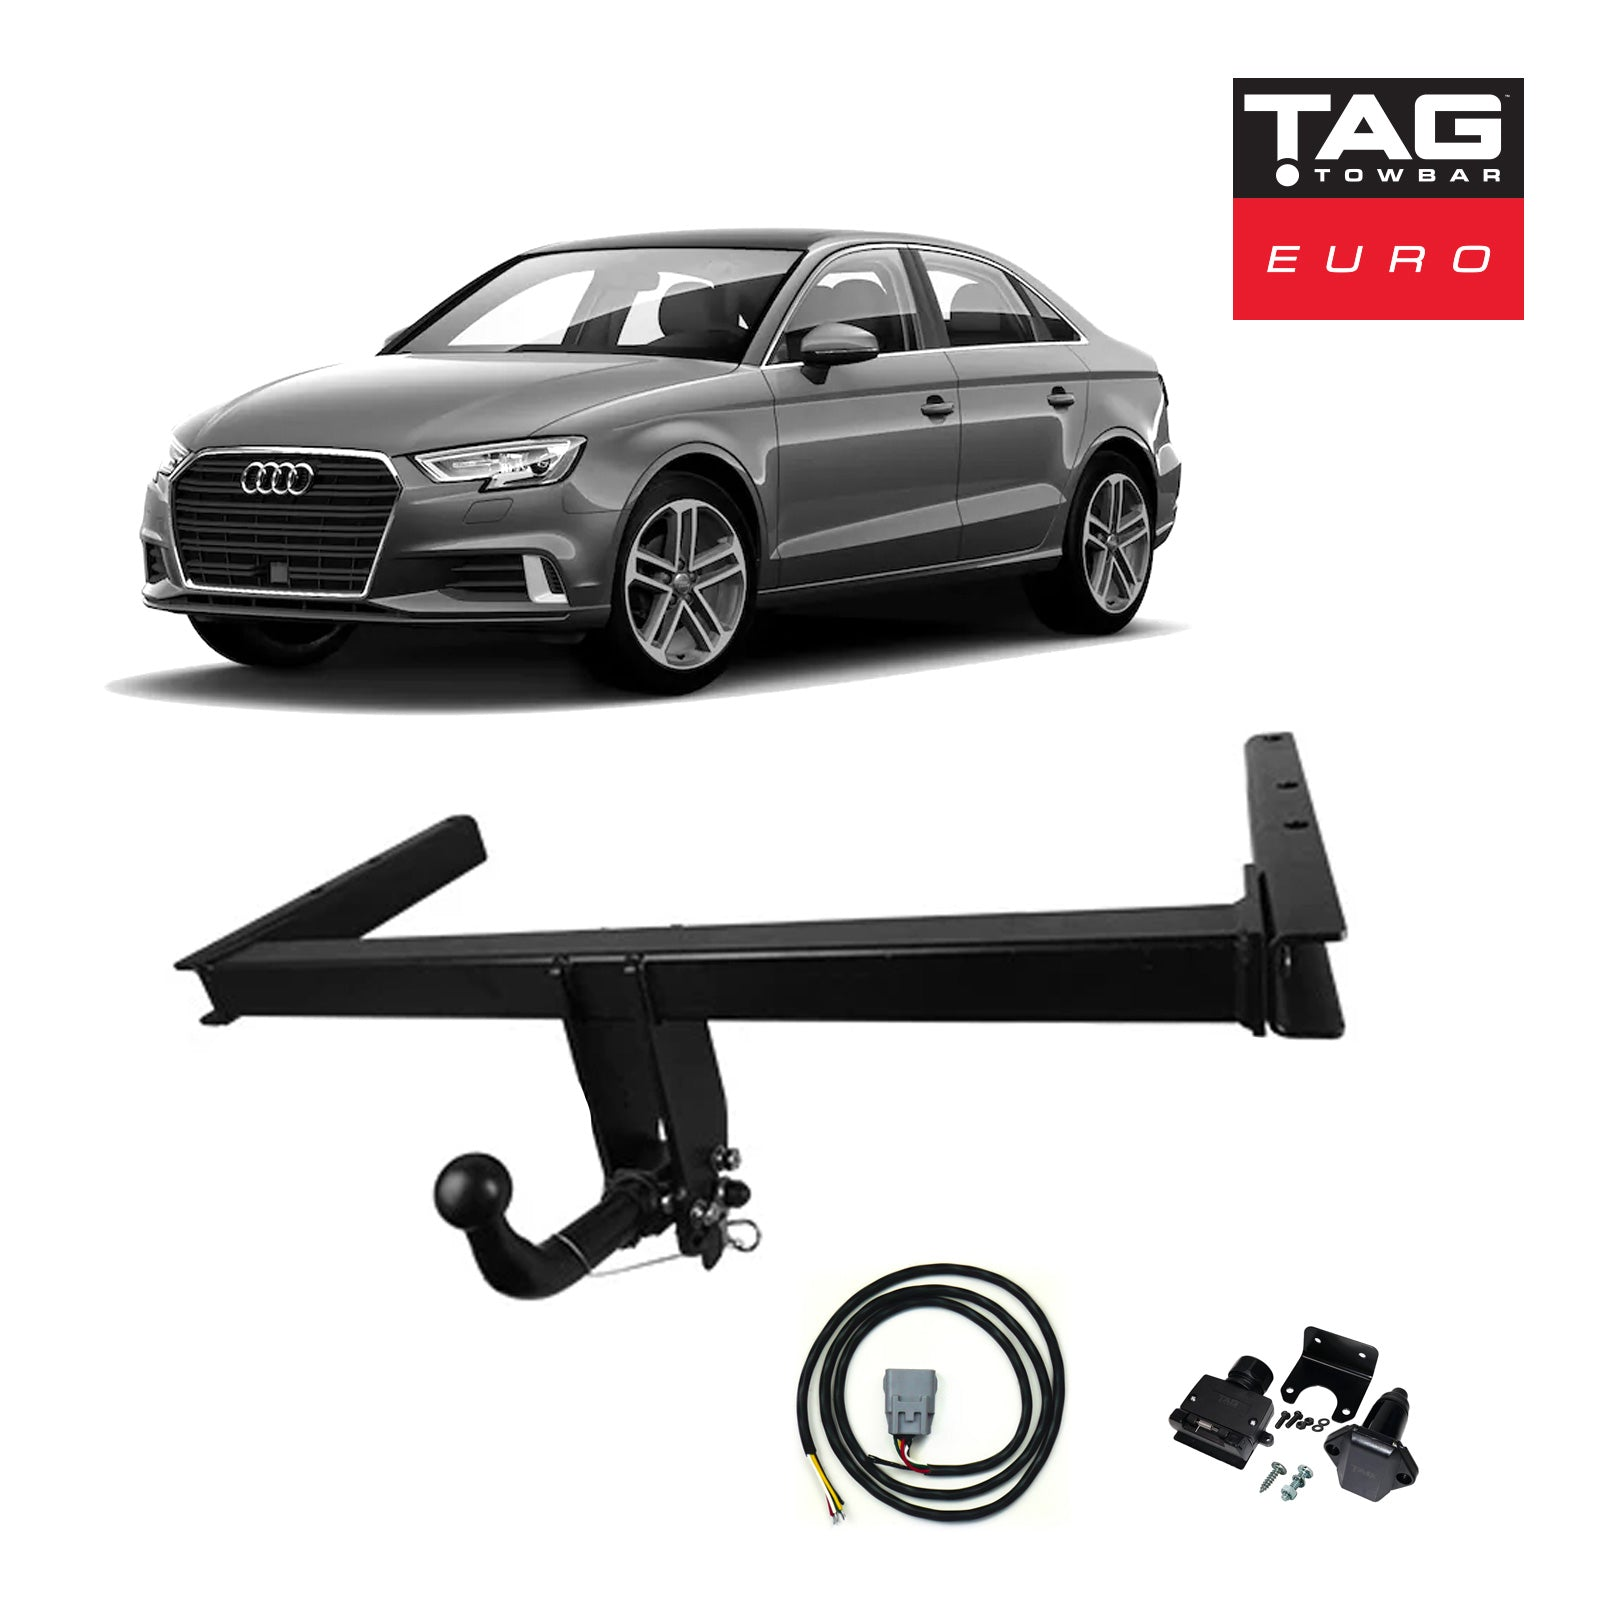 TAG Towbars European Style Tongue to suit Audi A3 (05/2003 - 09/2008)